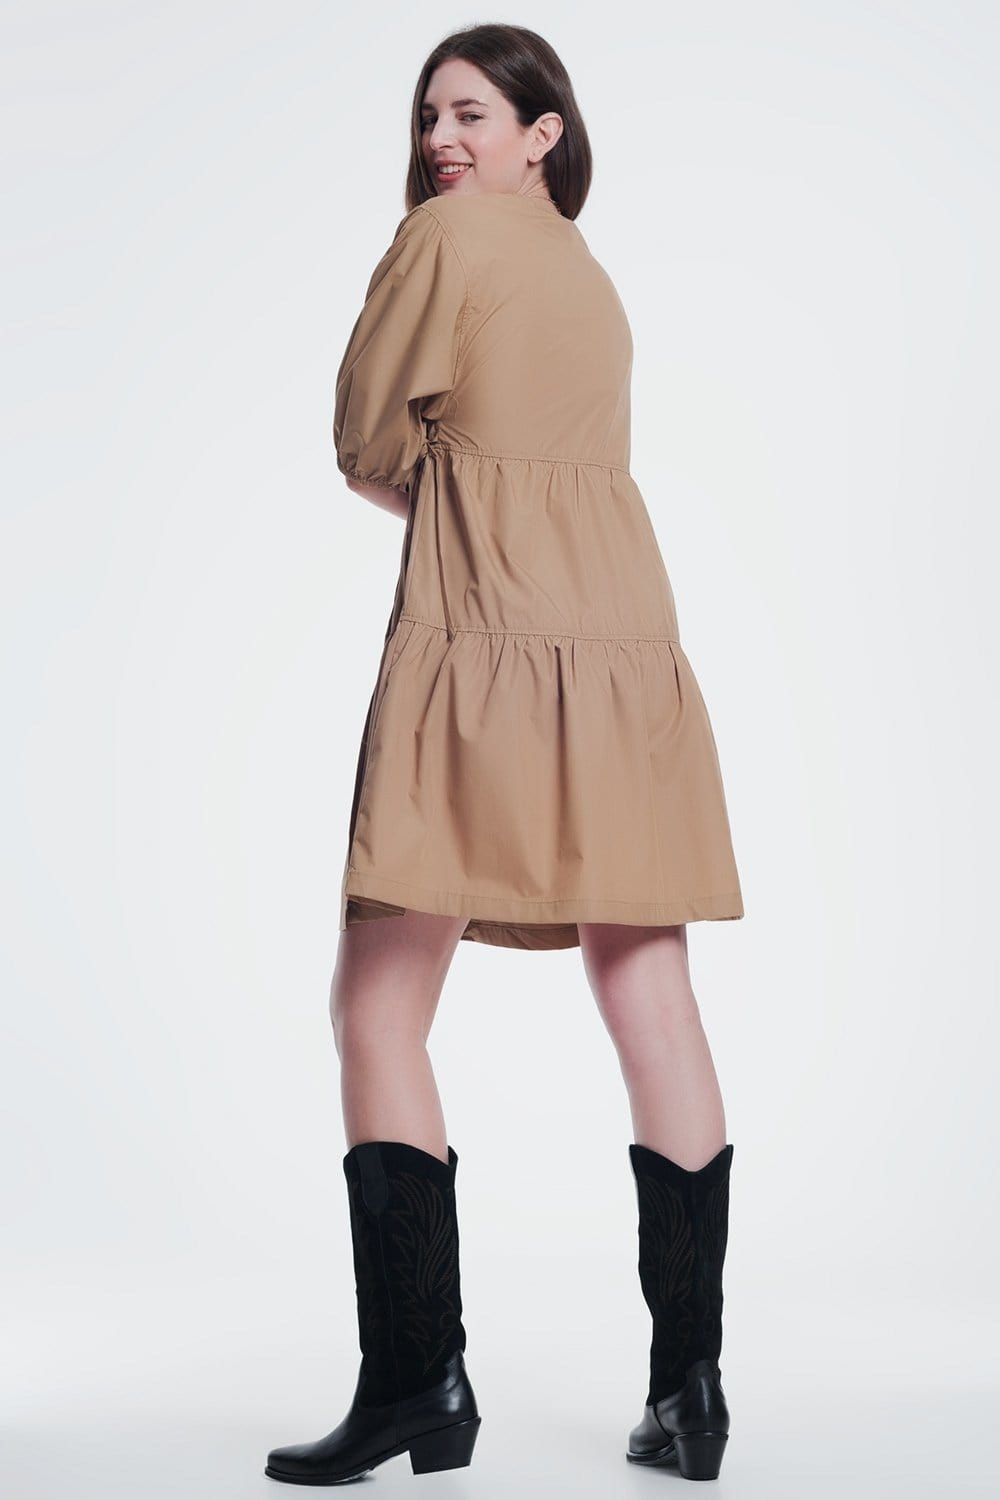 Camel Baggy Mini Dress with Short Sleeves - Himelhoch's